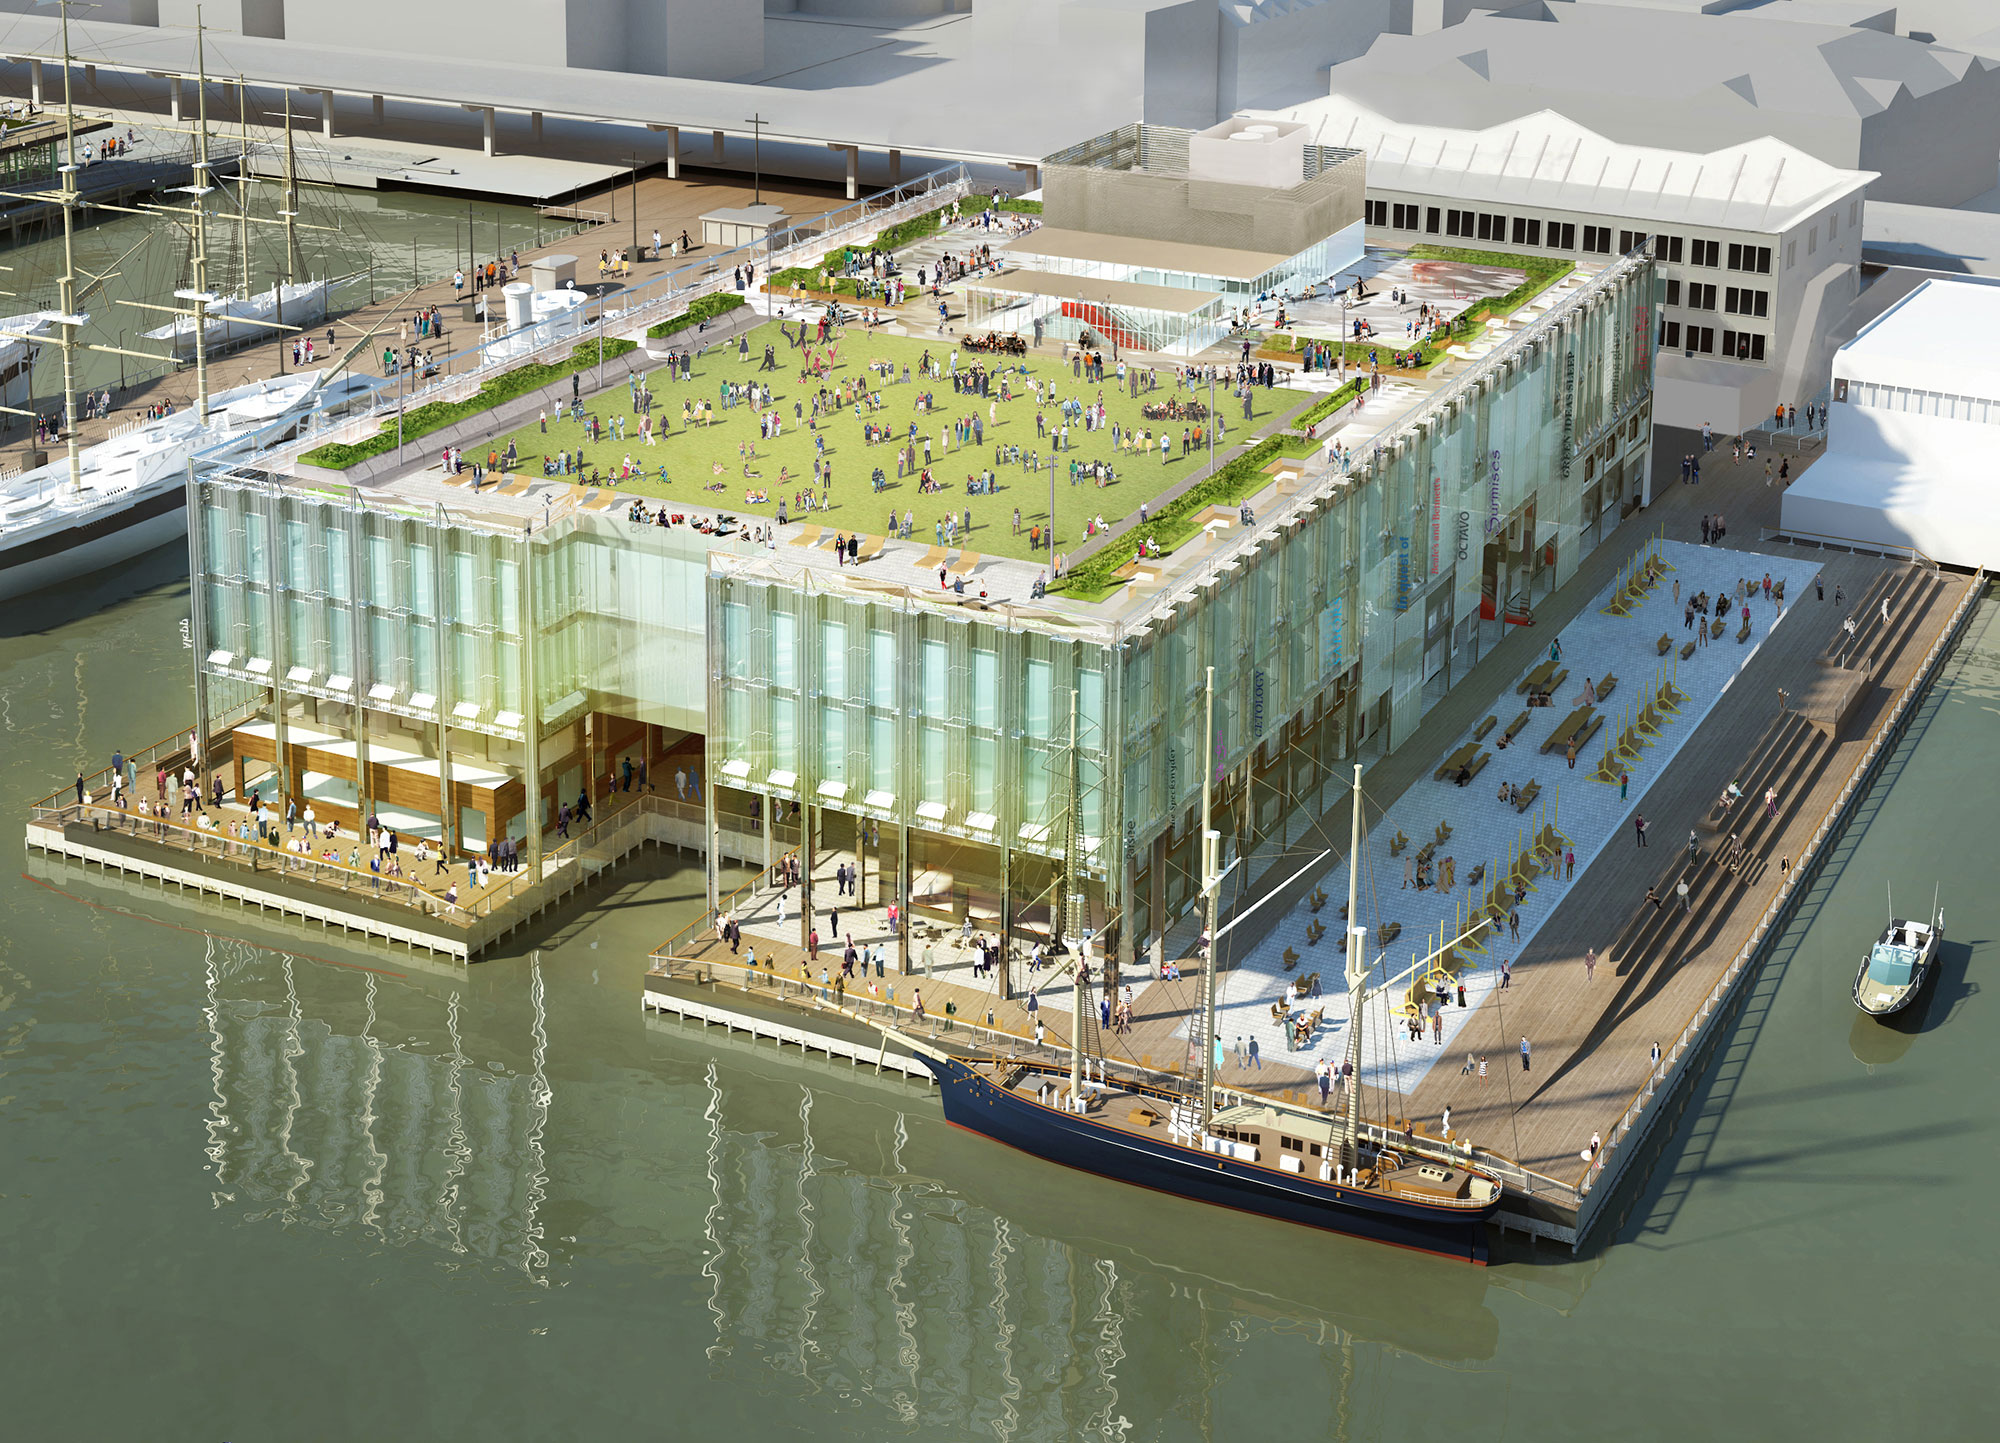 South Street Seaport Pier 17 Redevelopment Heintges